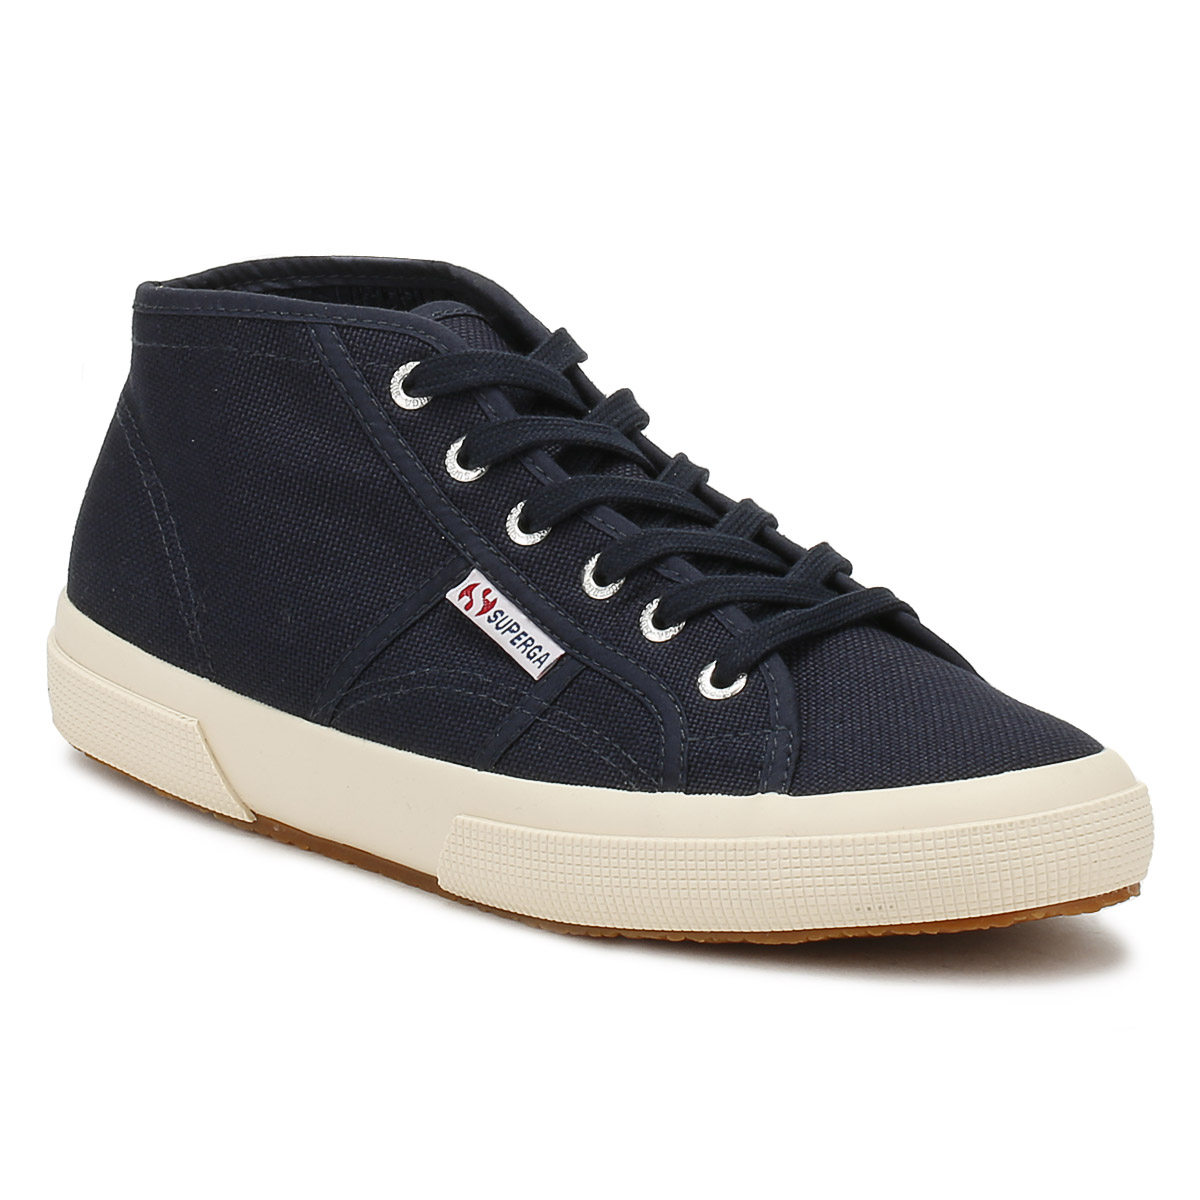 Superga Unisex Trainers Navy 2754 Up Cotu Sport Casual Lace Up 2754 hommes femmes Chaussures 4ff303